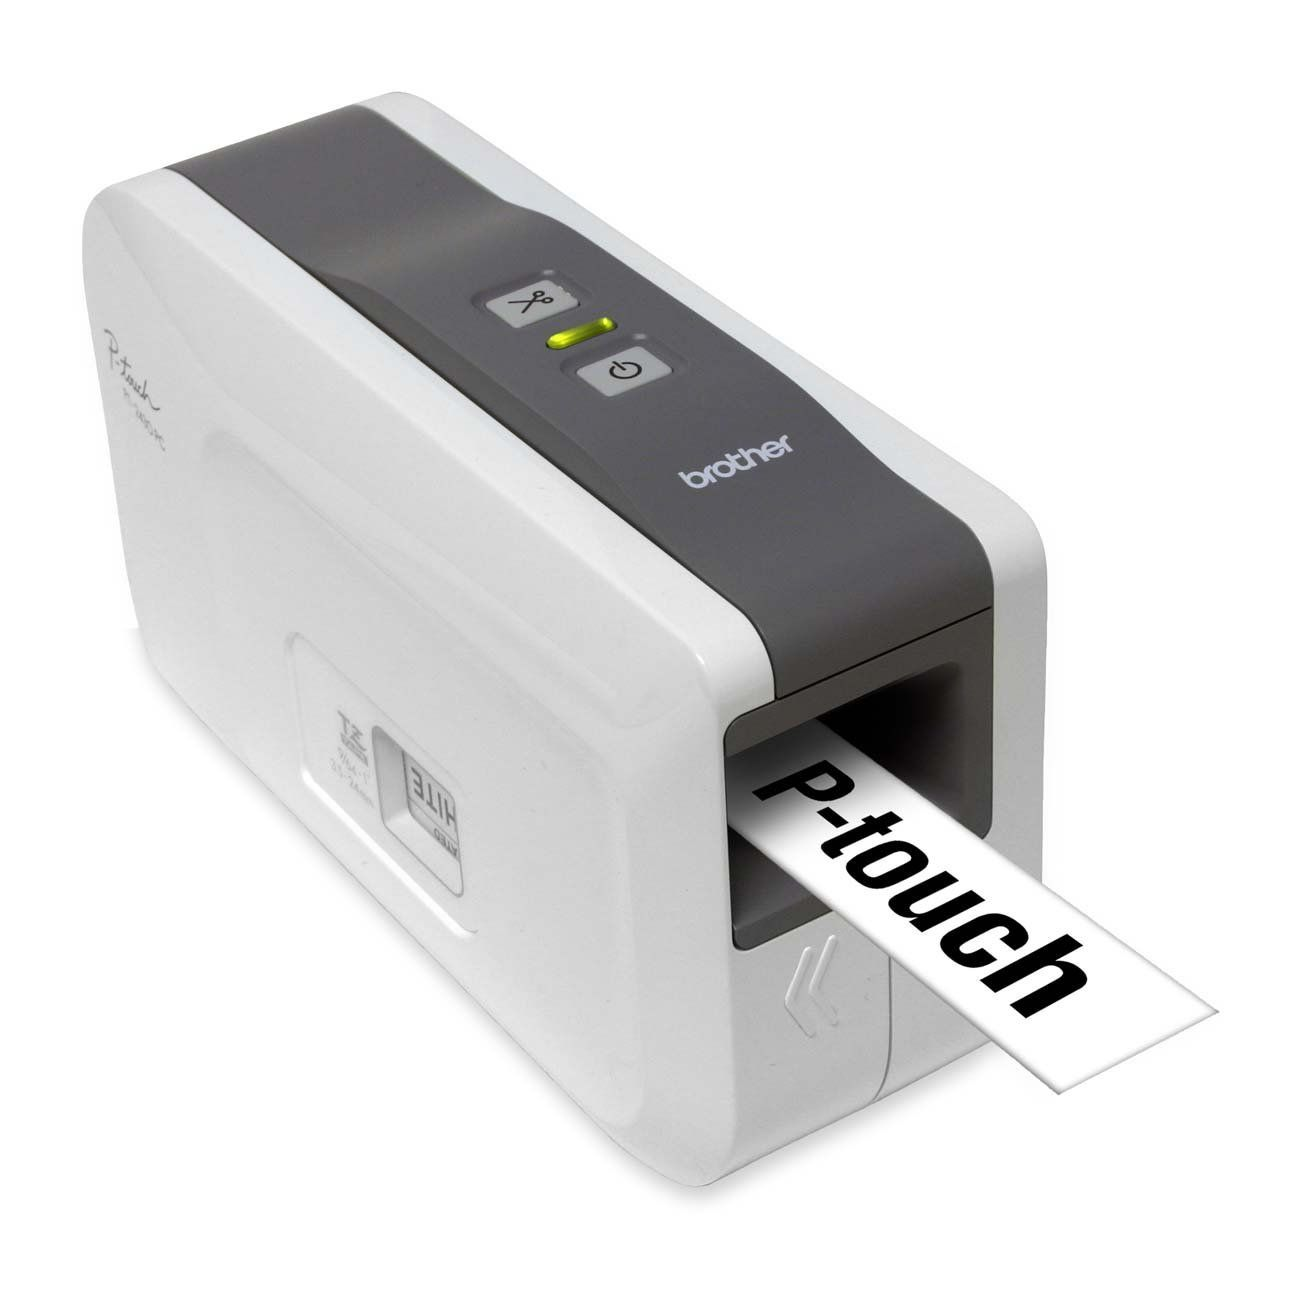 Amazon.com: Brother PC-Connectable Label Maker With Auto